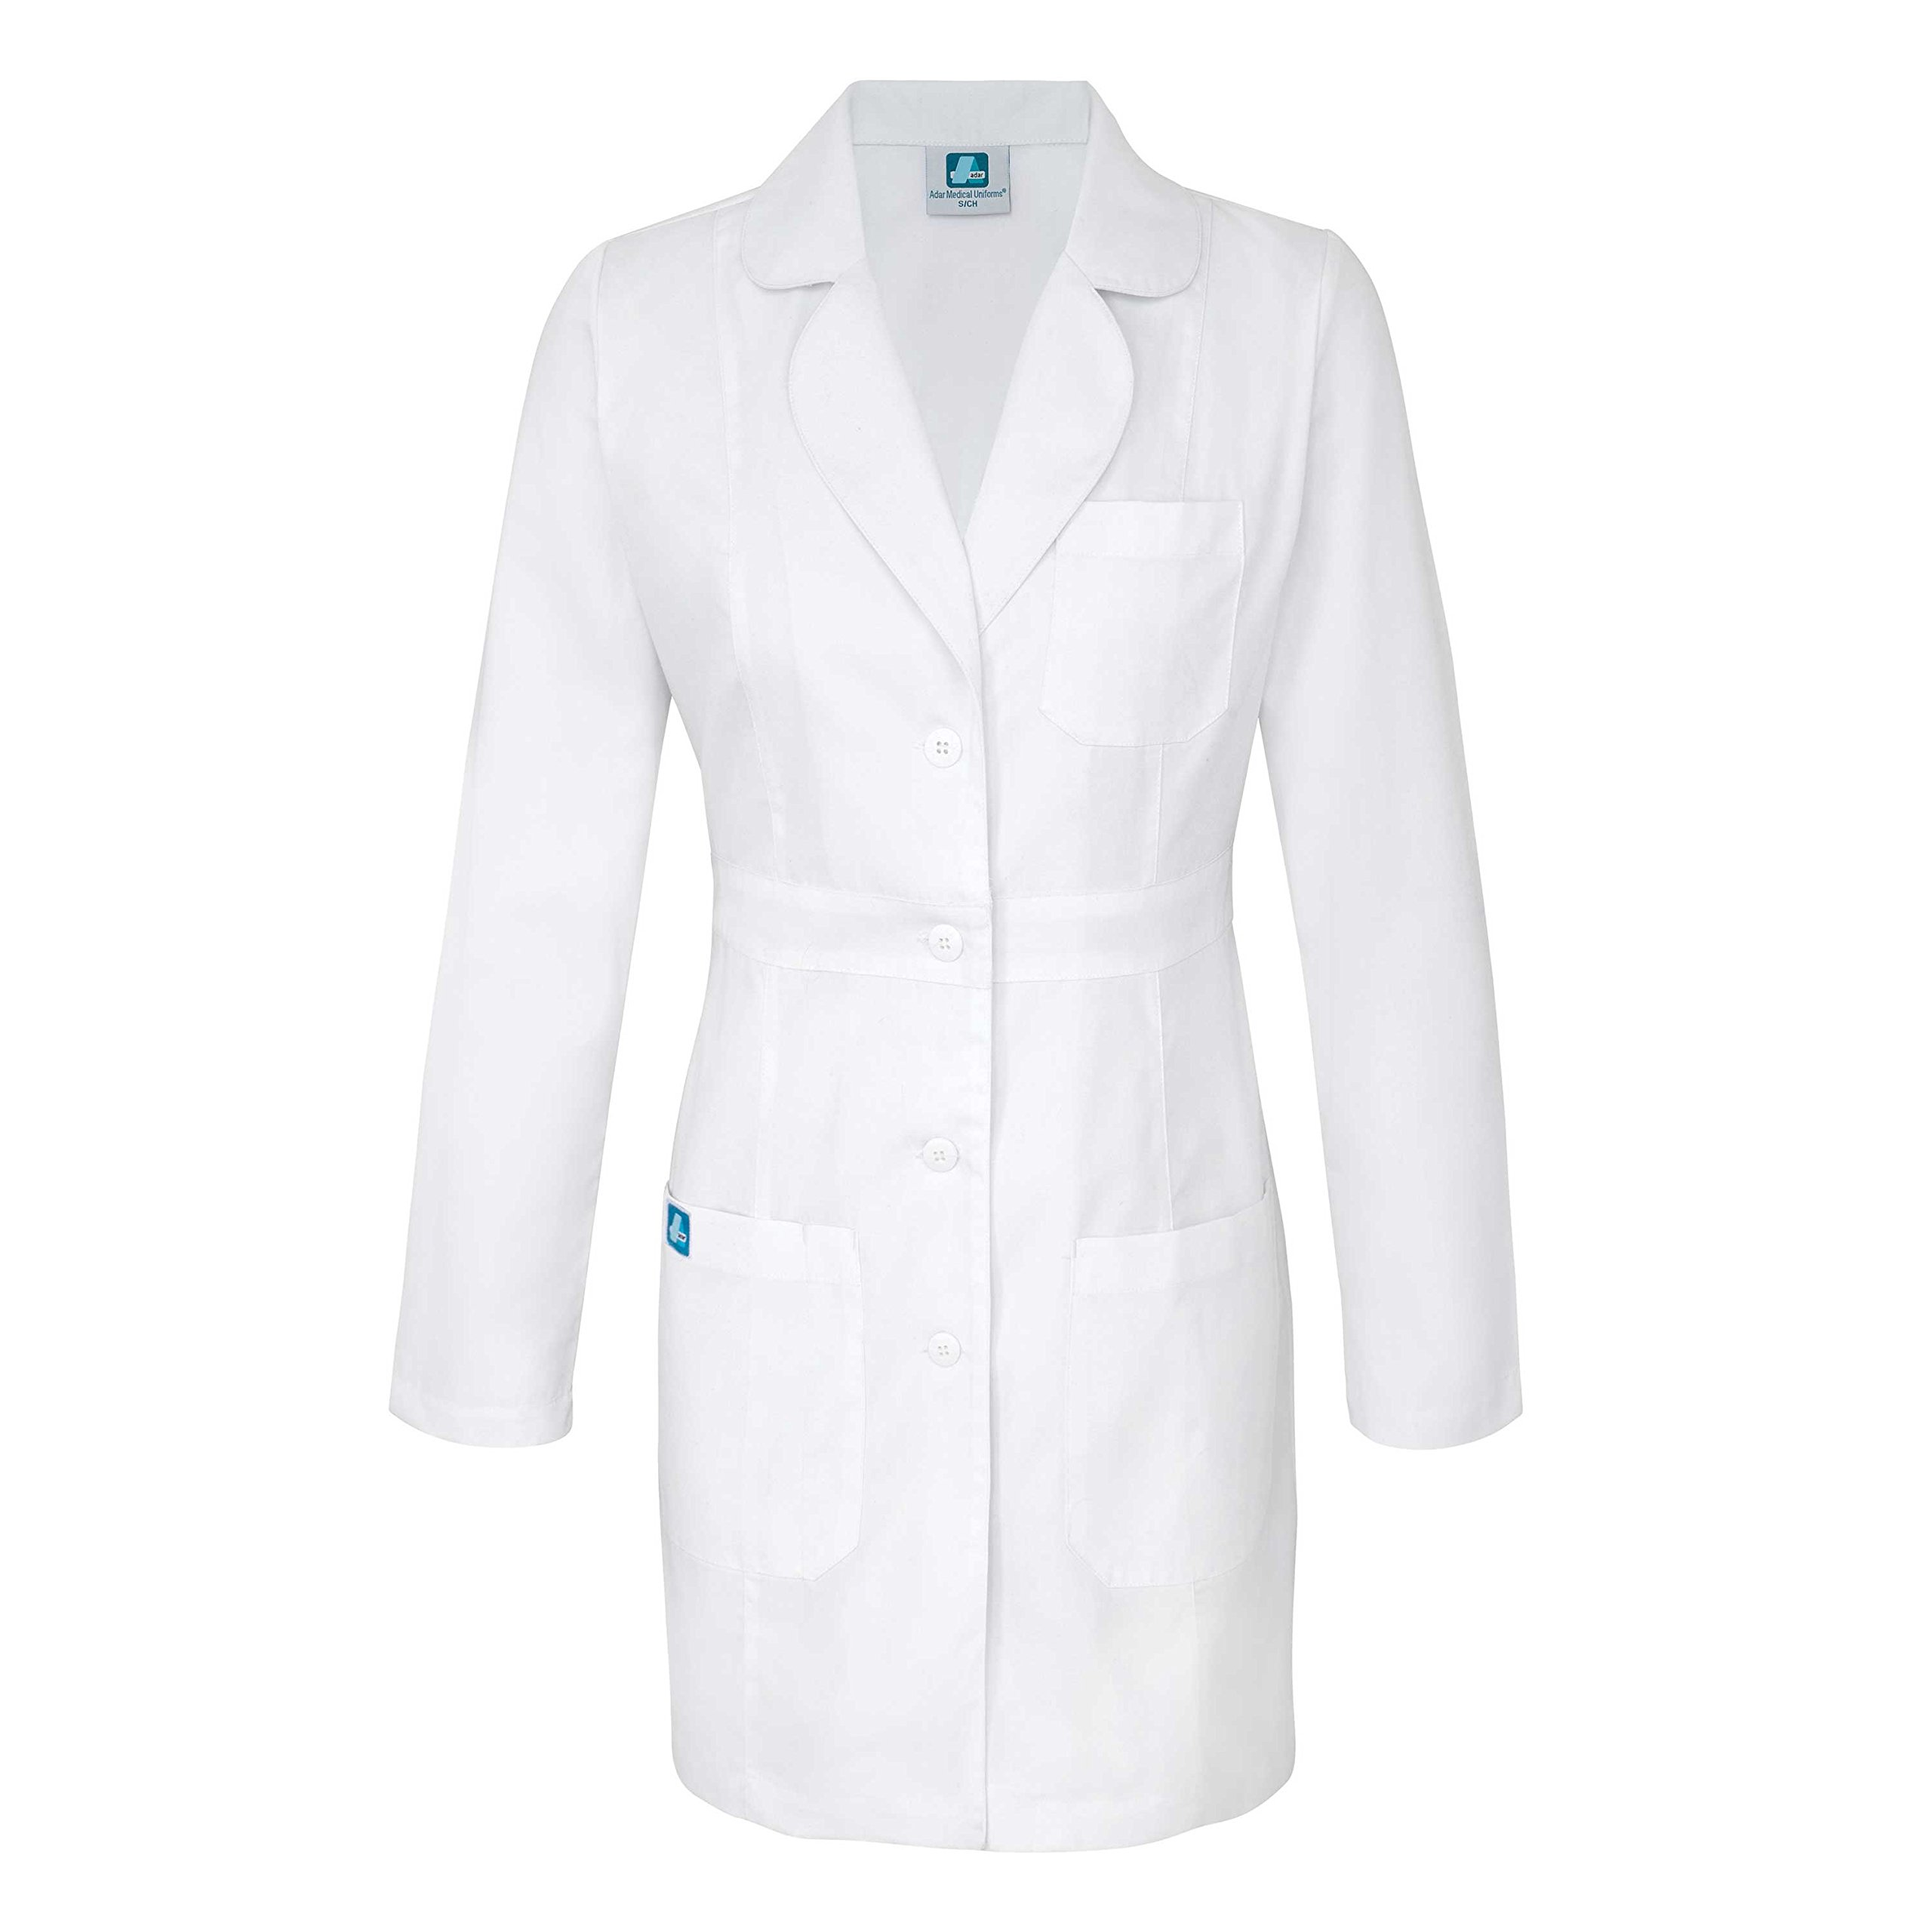 Adar Universal Women's 33'' Adjustable Belt Lab Coat - 2817 - White - L